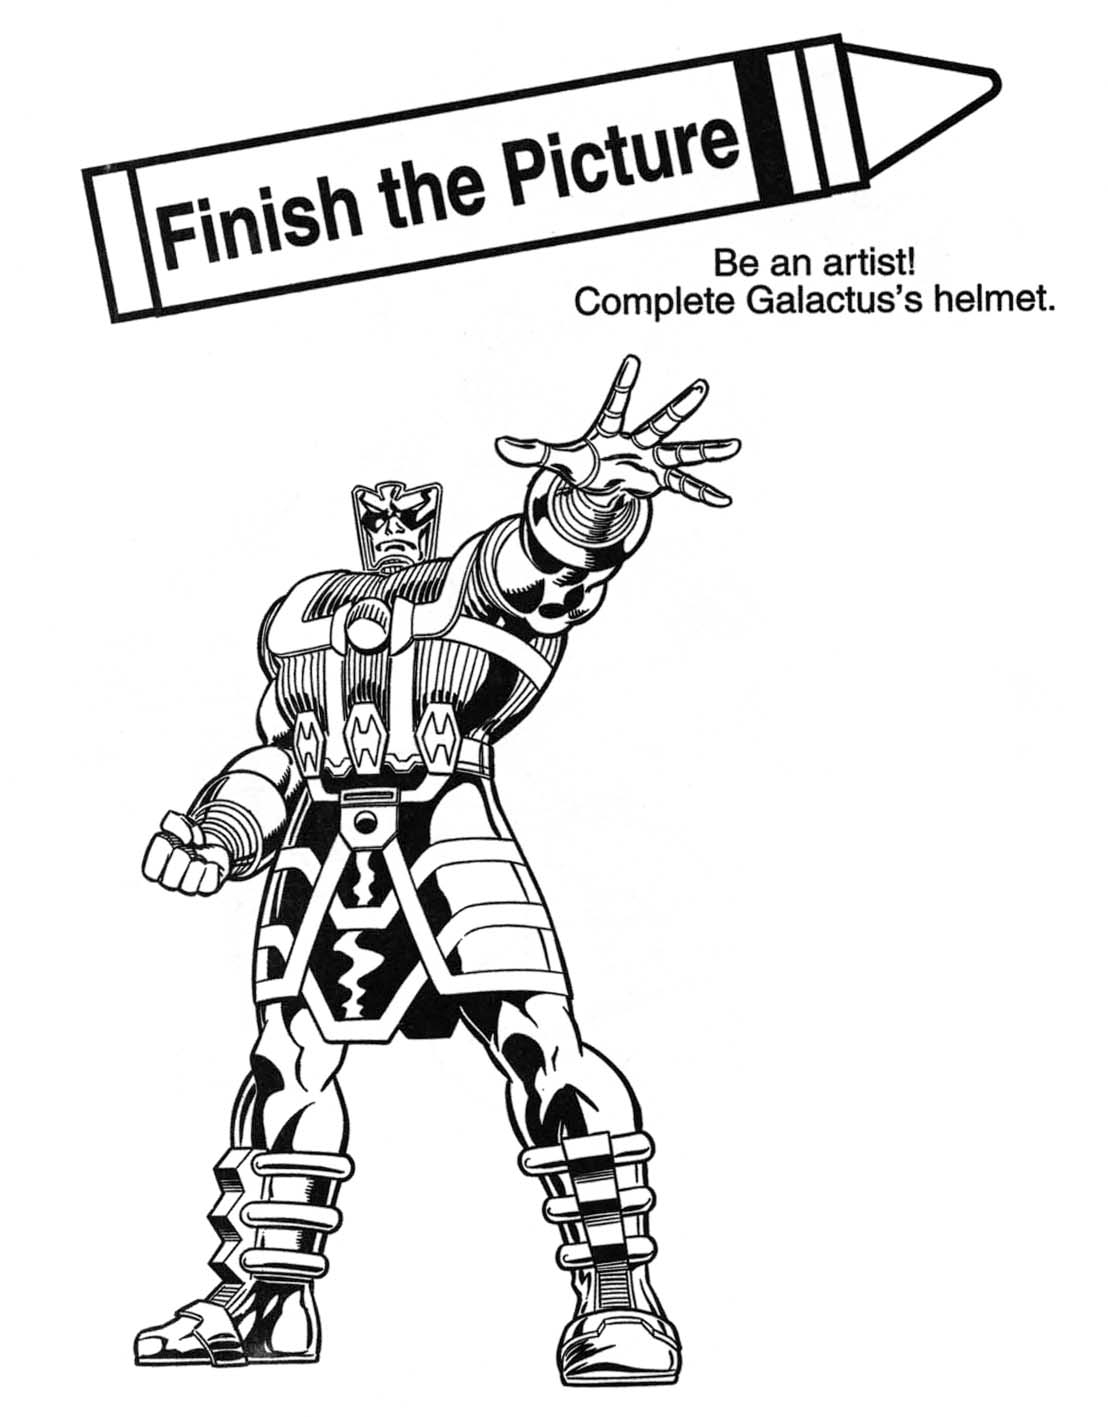 marvel coloring pages printable marvel coloring pages best coloring pages for kids marvel printable coloring pages 1 1